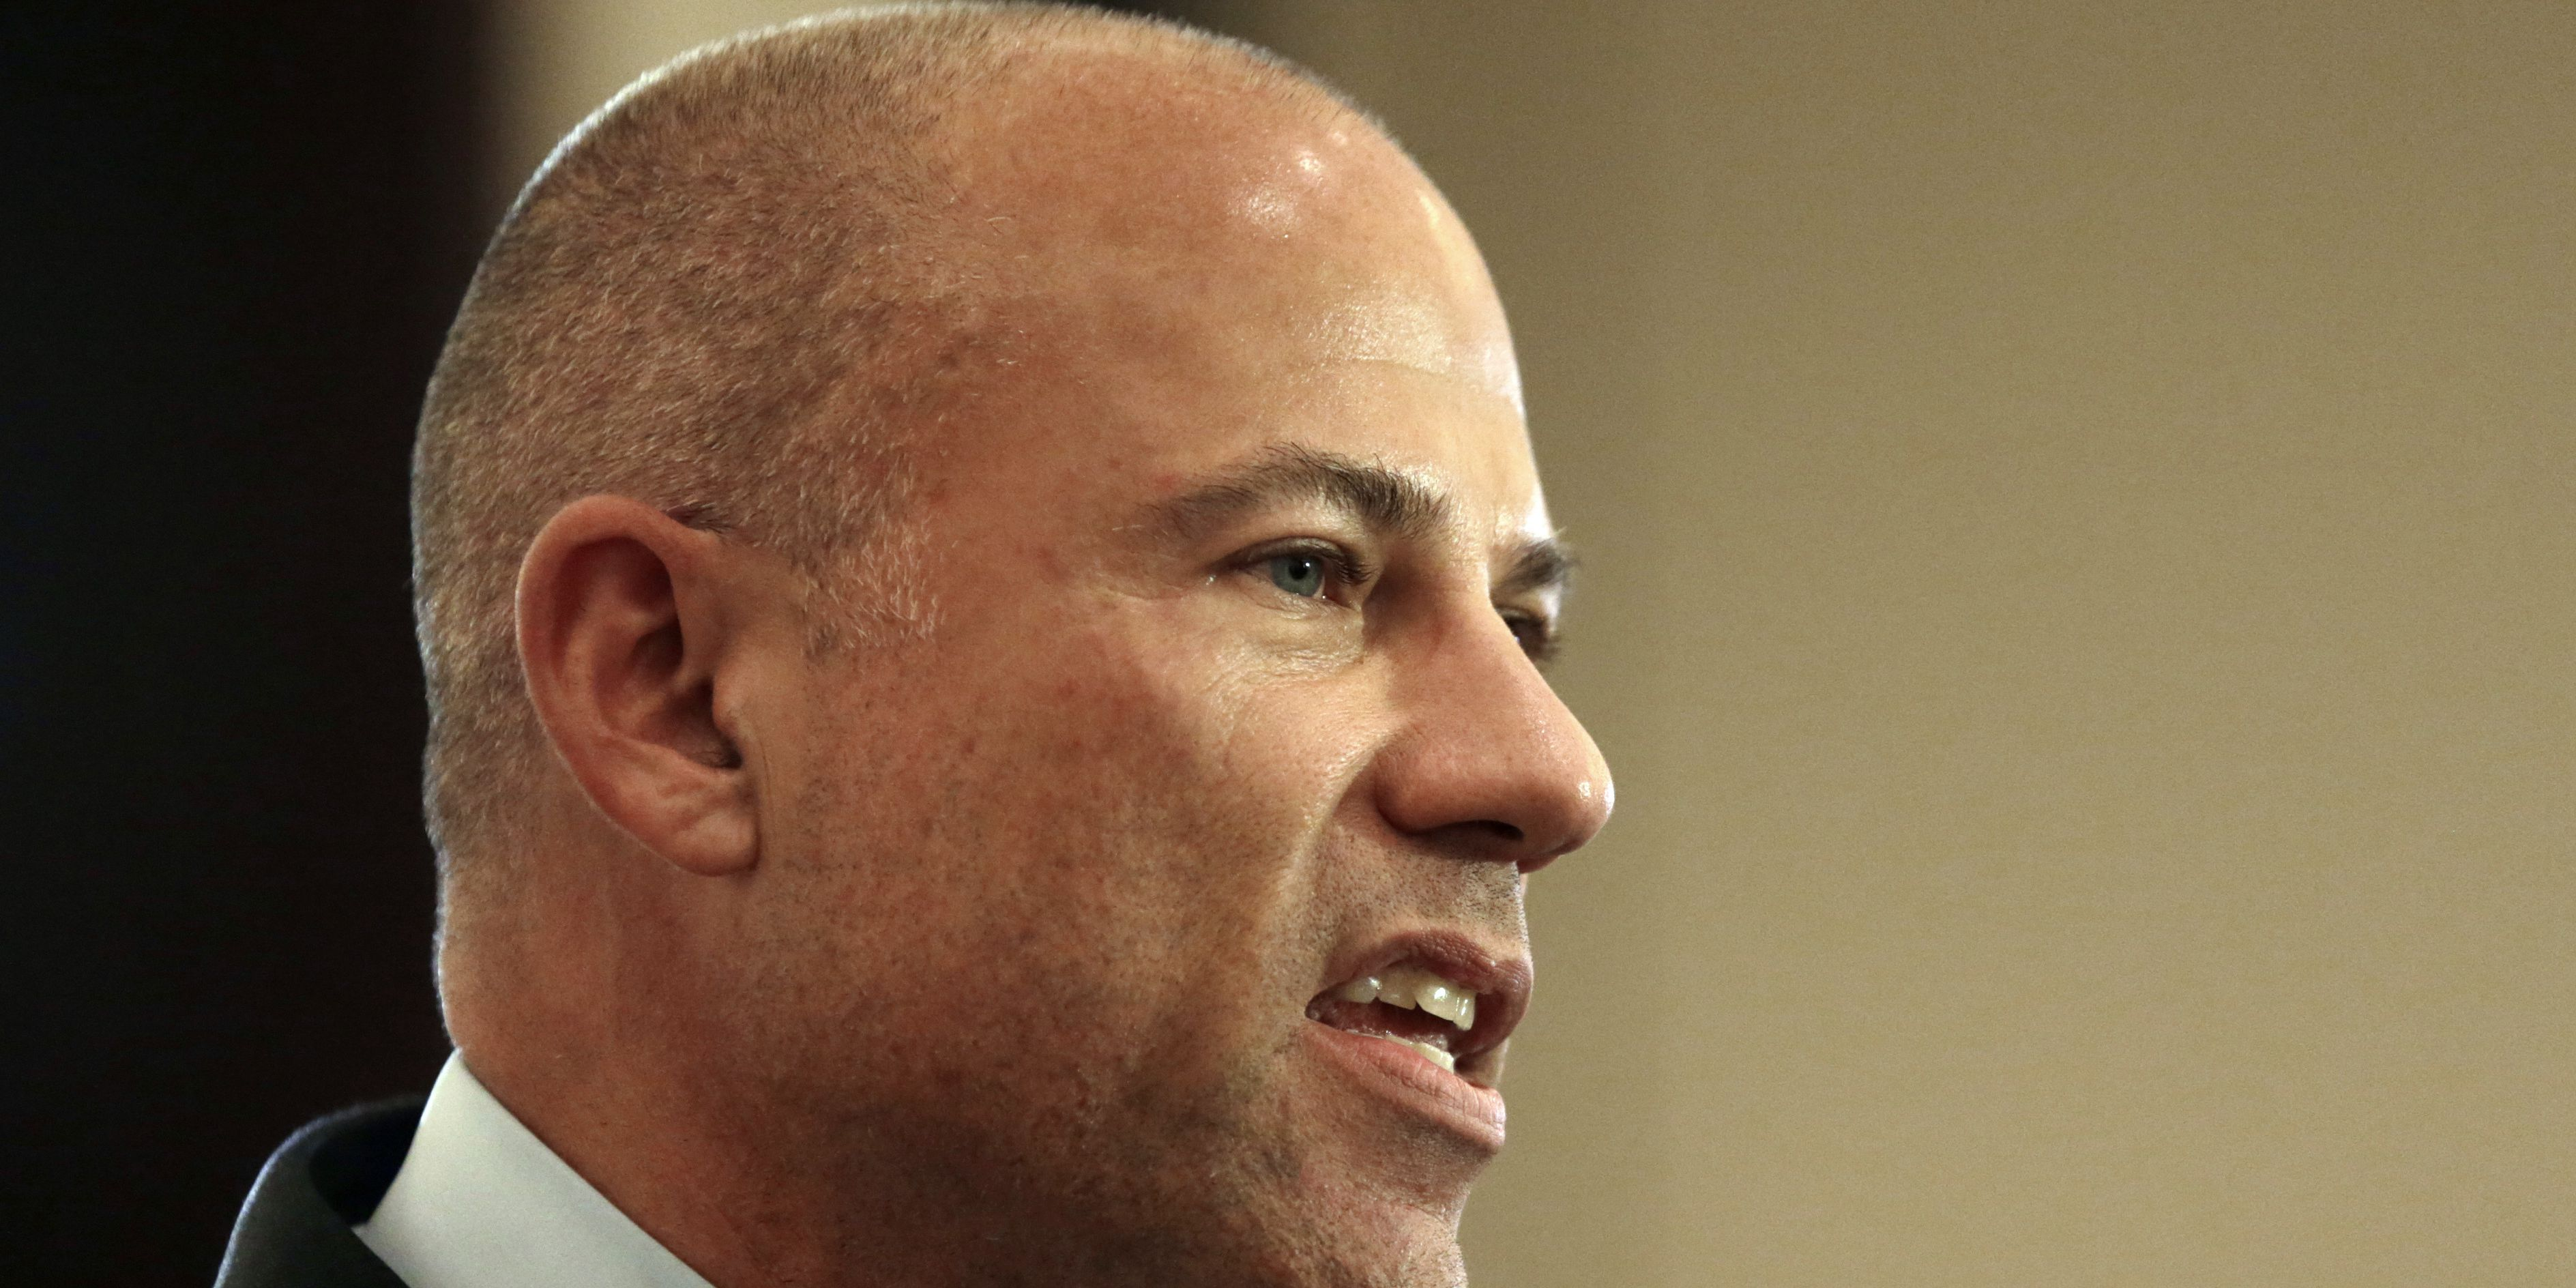 After his release, Michael Avenatti says he expects to be exonerated